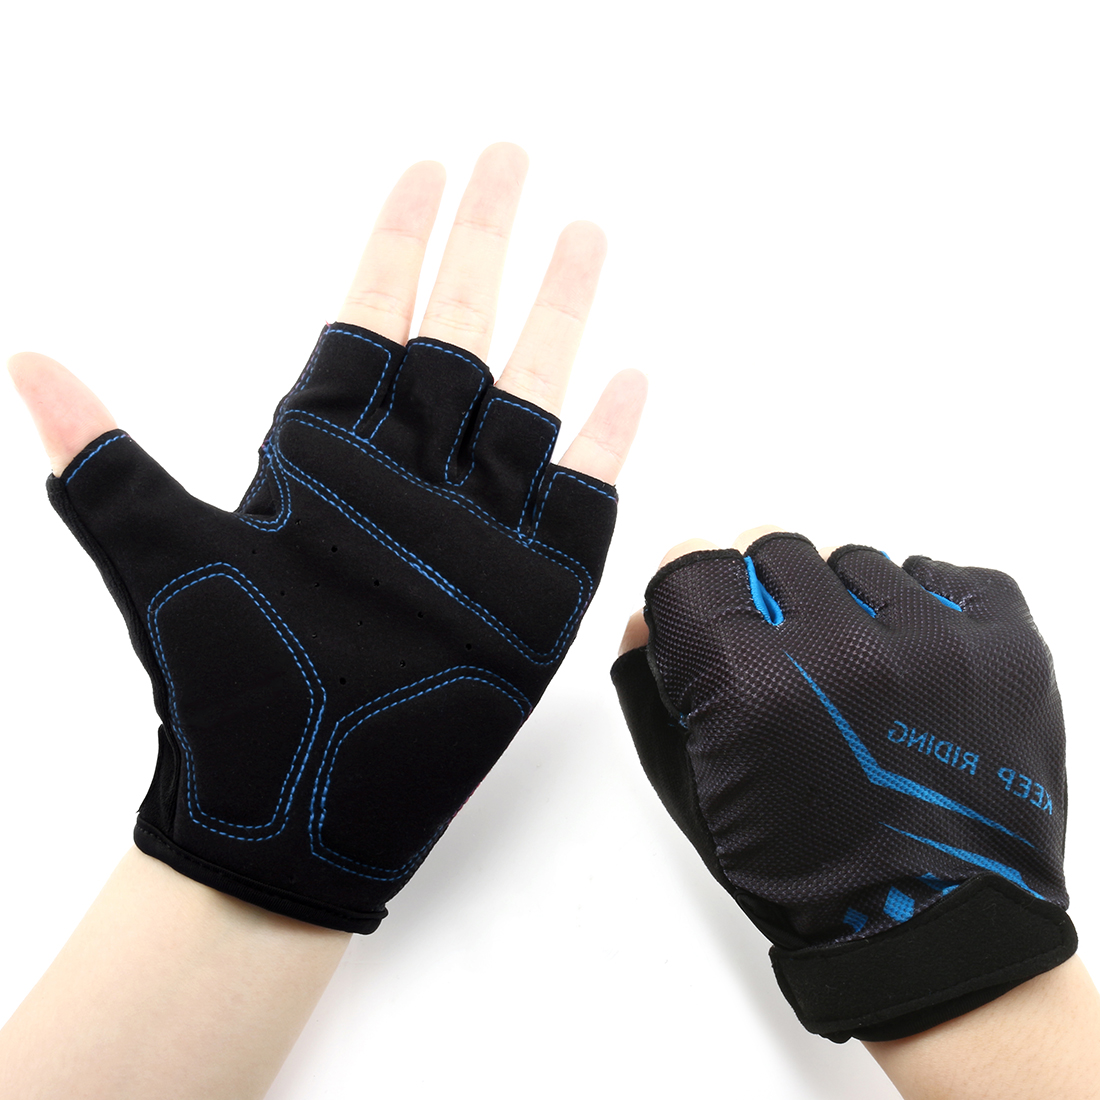 Outdoor Elasticized Fabric Sports Exercise Half Finger Cycling Gloves Palm Support Pair (Blue S)